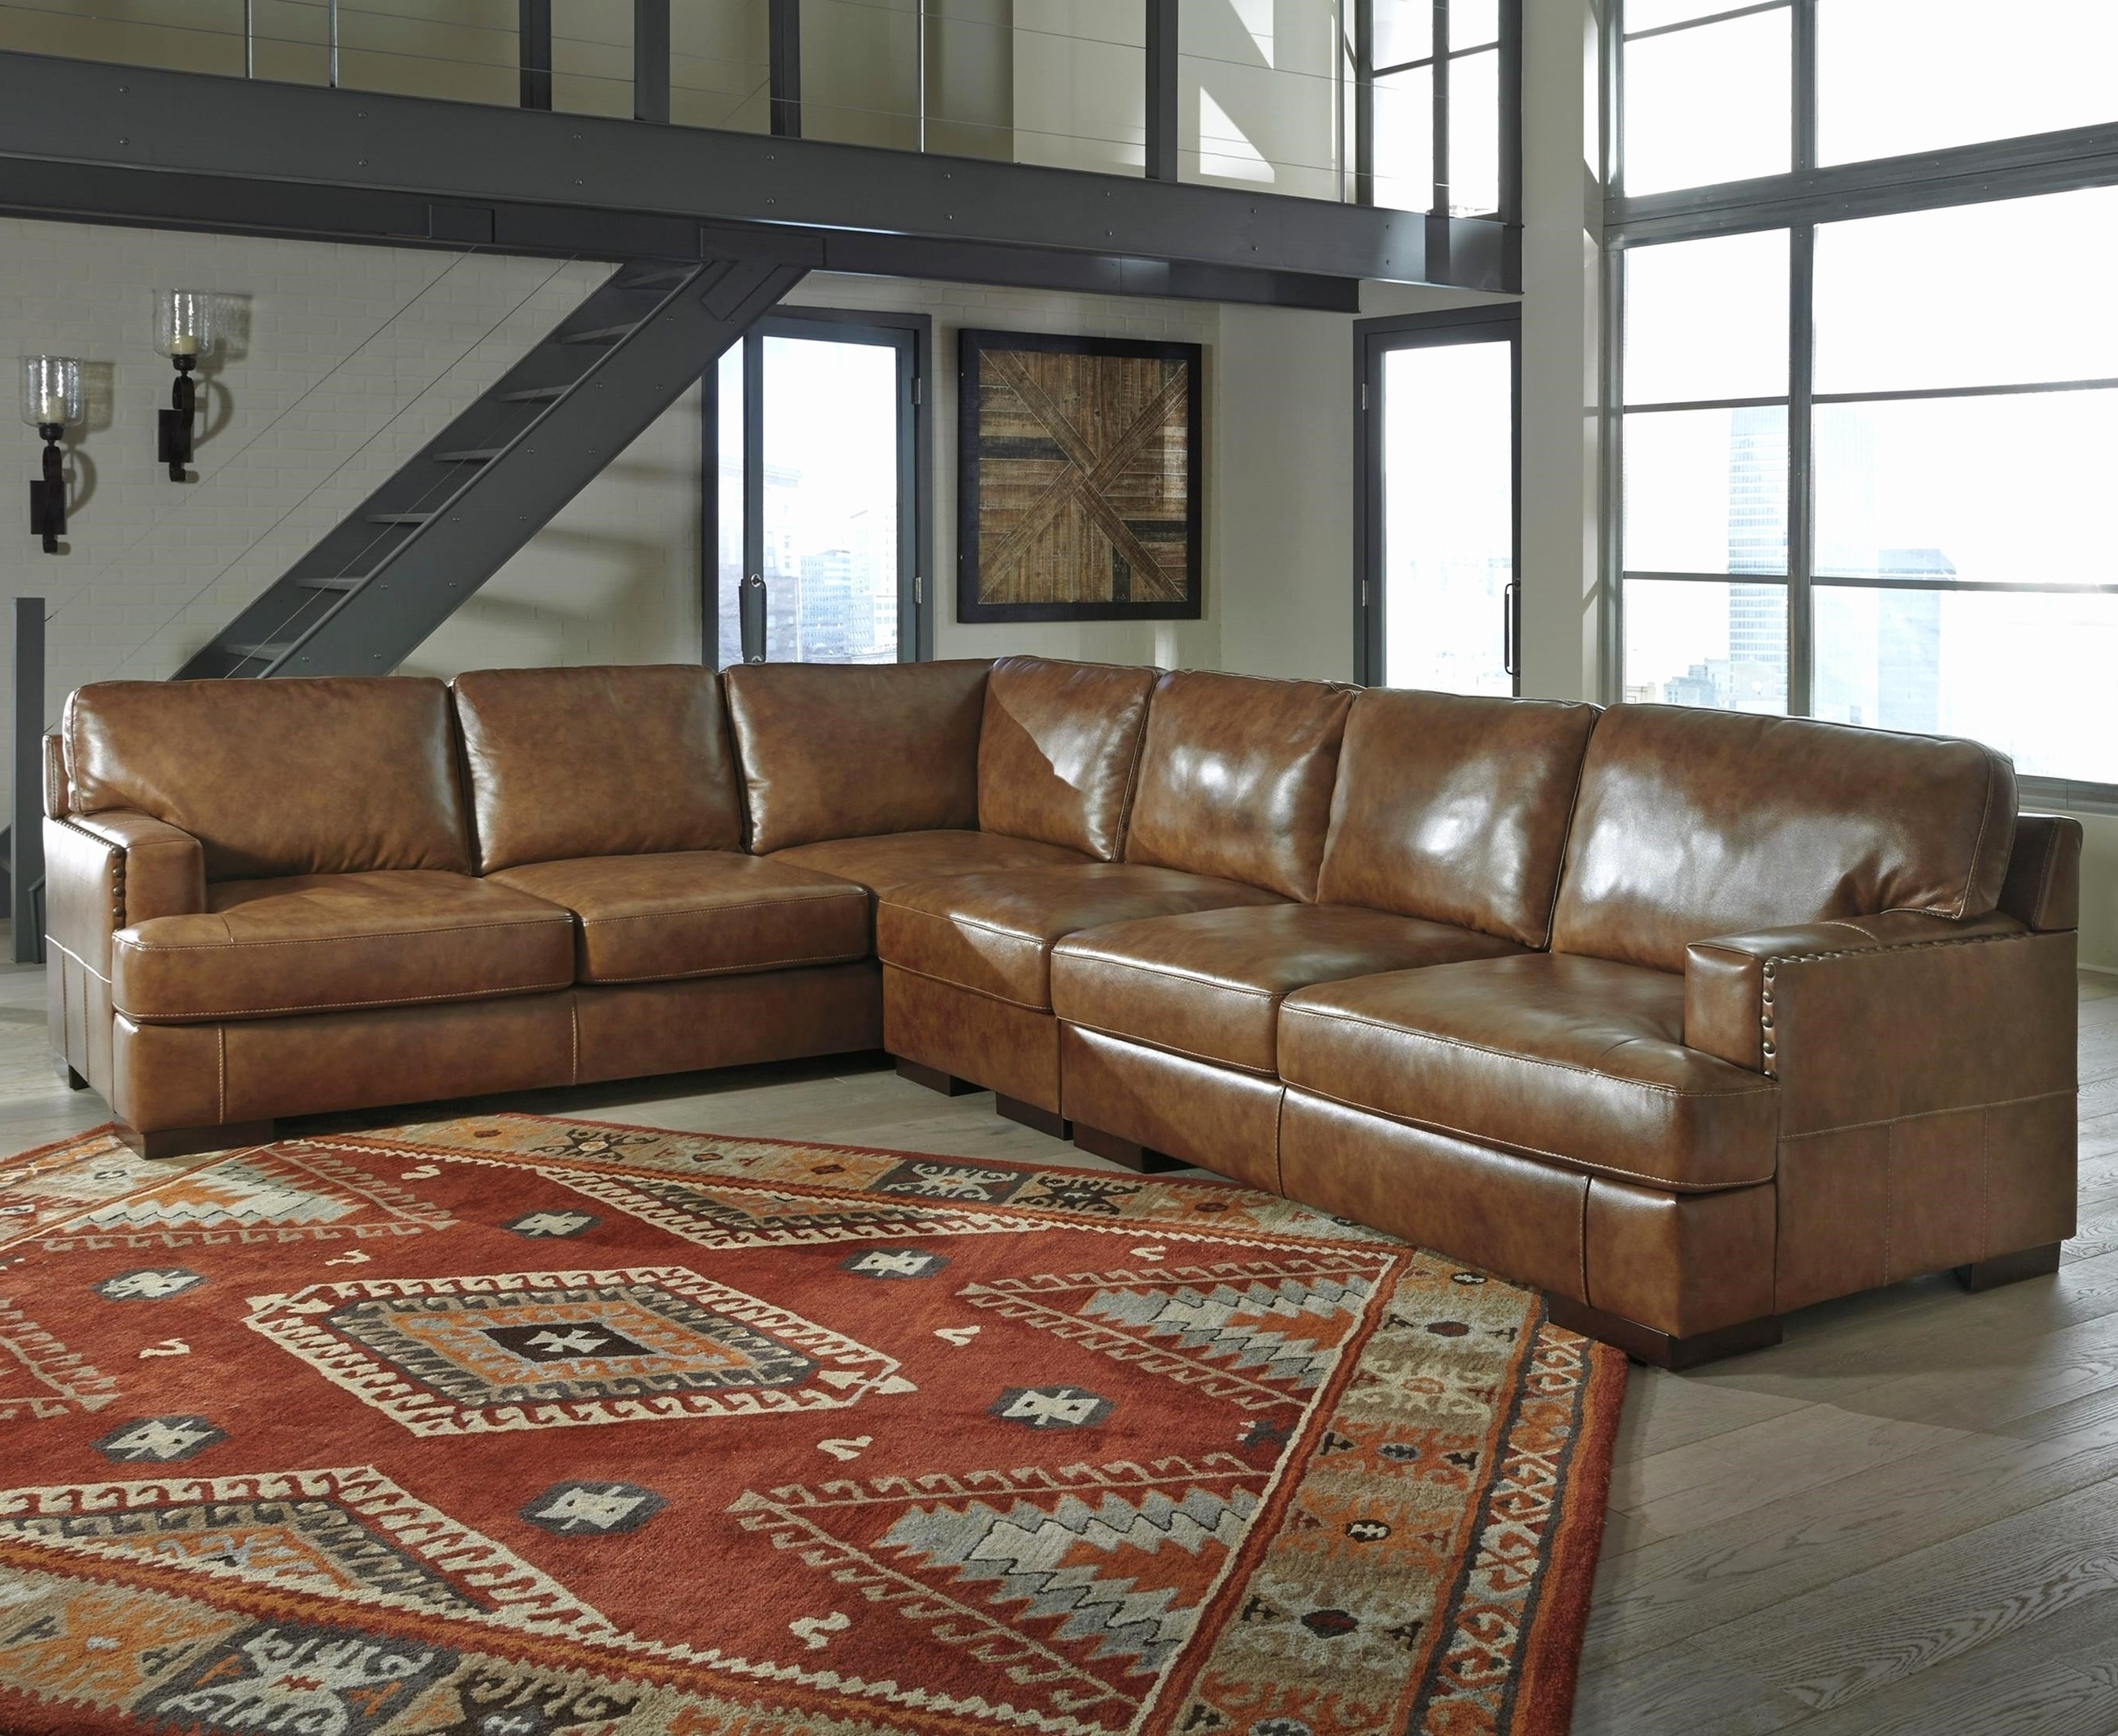 Newest Grand Furniture Sectional Sofas Throughout Lovely 3 Piece Corner Sectional Sofa 2018 – Couches And Sofas Ideas (View 14 of 15)